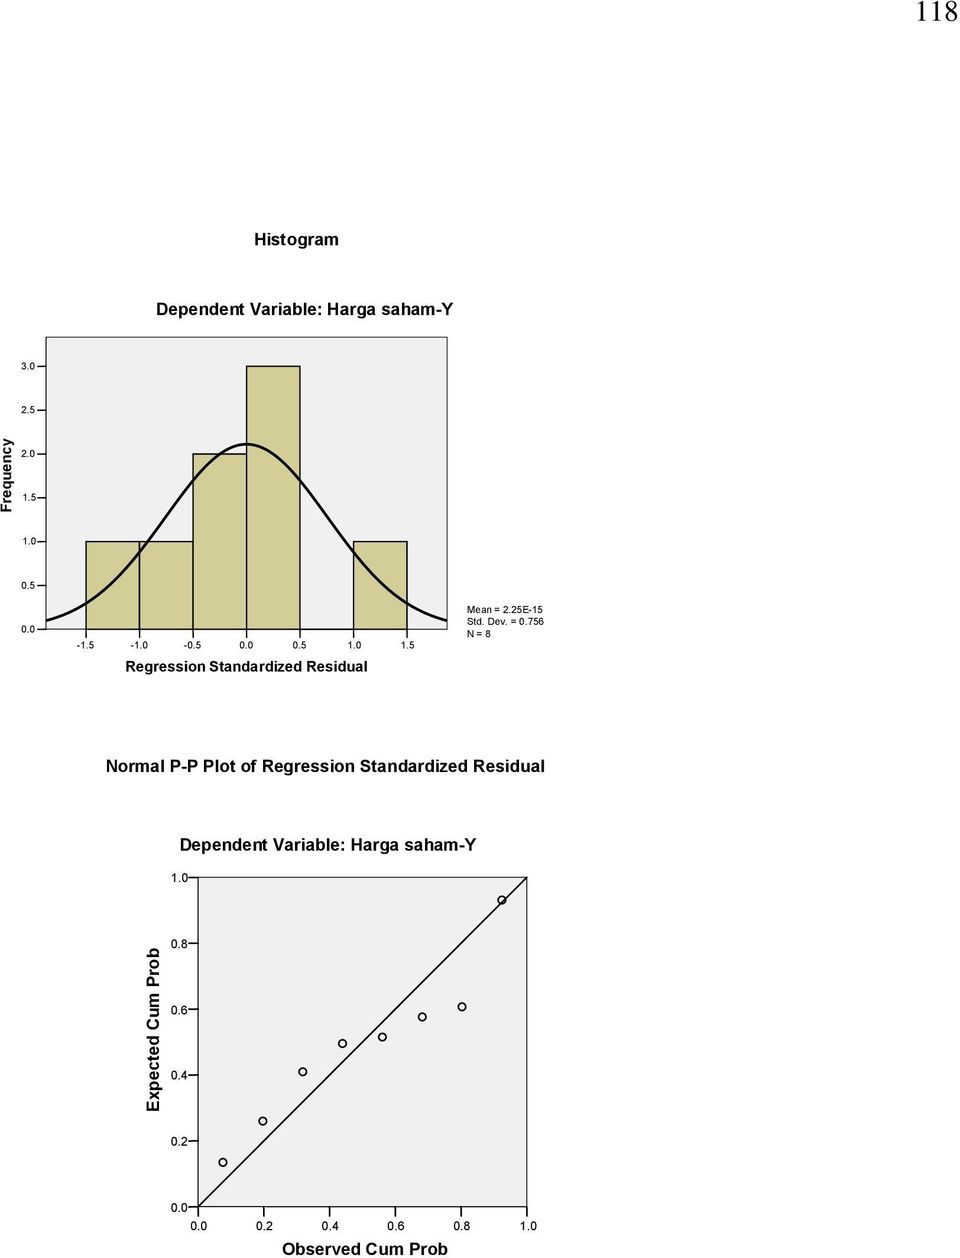 Residual Normal P-P Plot of Regression Standardized Residual.